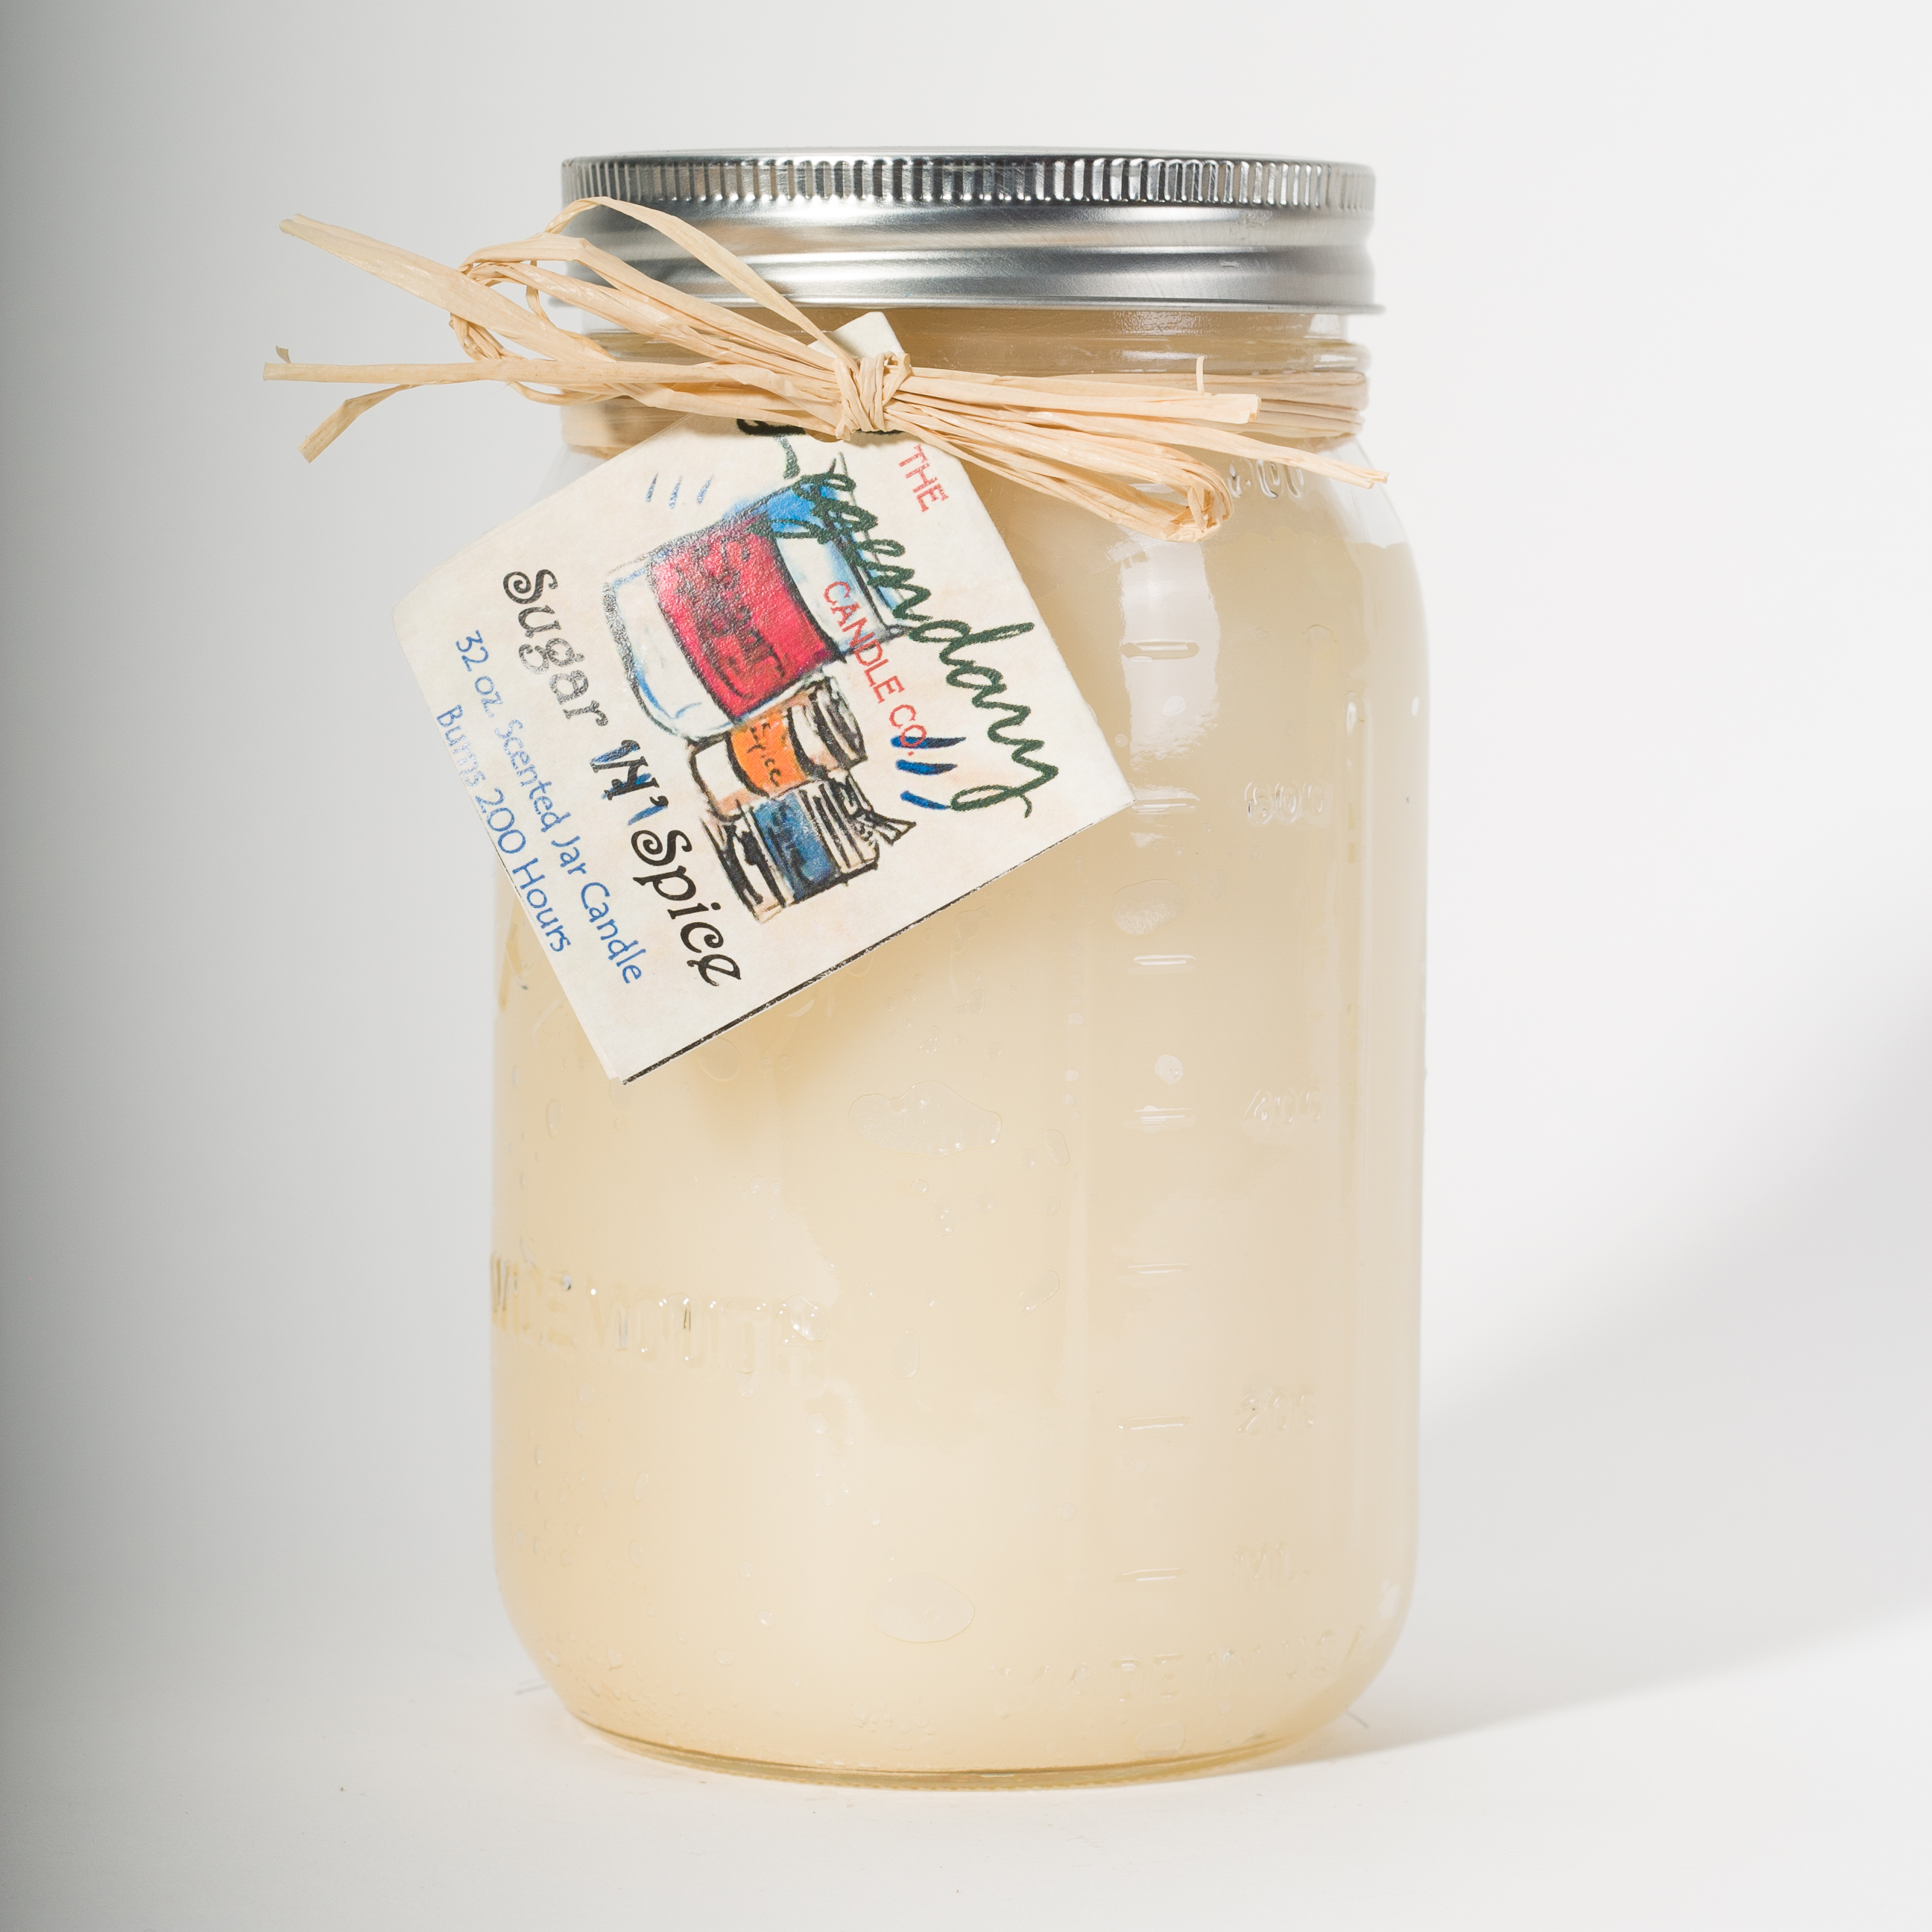 32 Ounce Sugar 'N' Spice Scented Mason Jar Candle